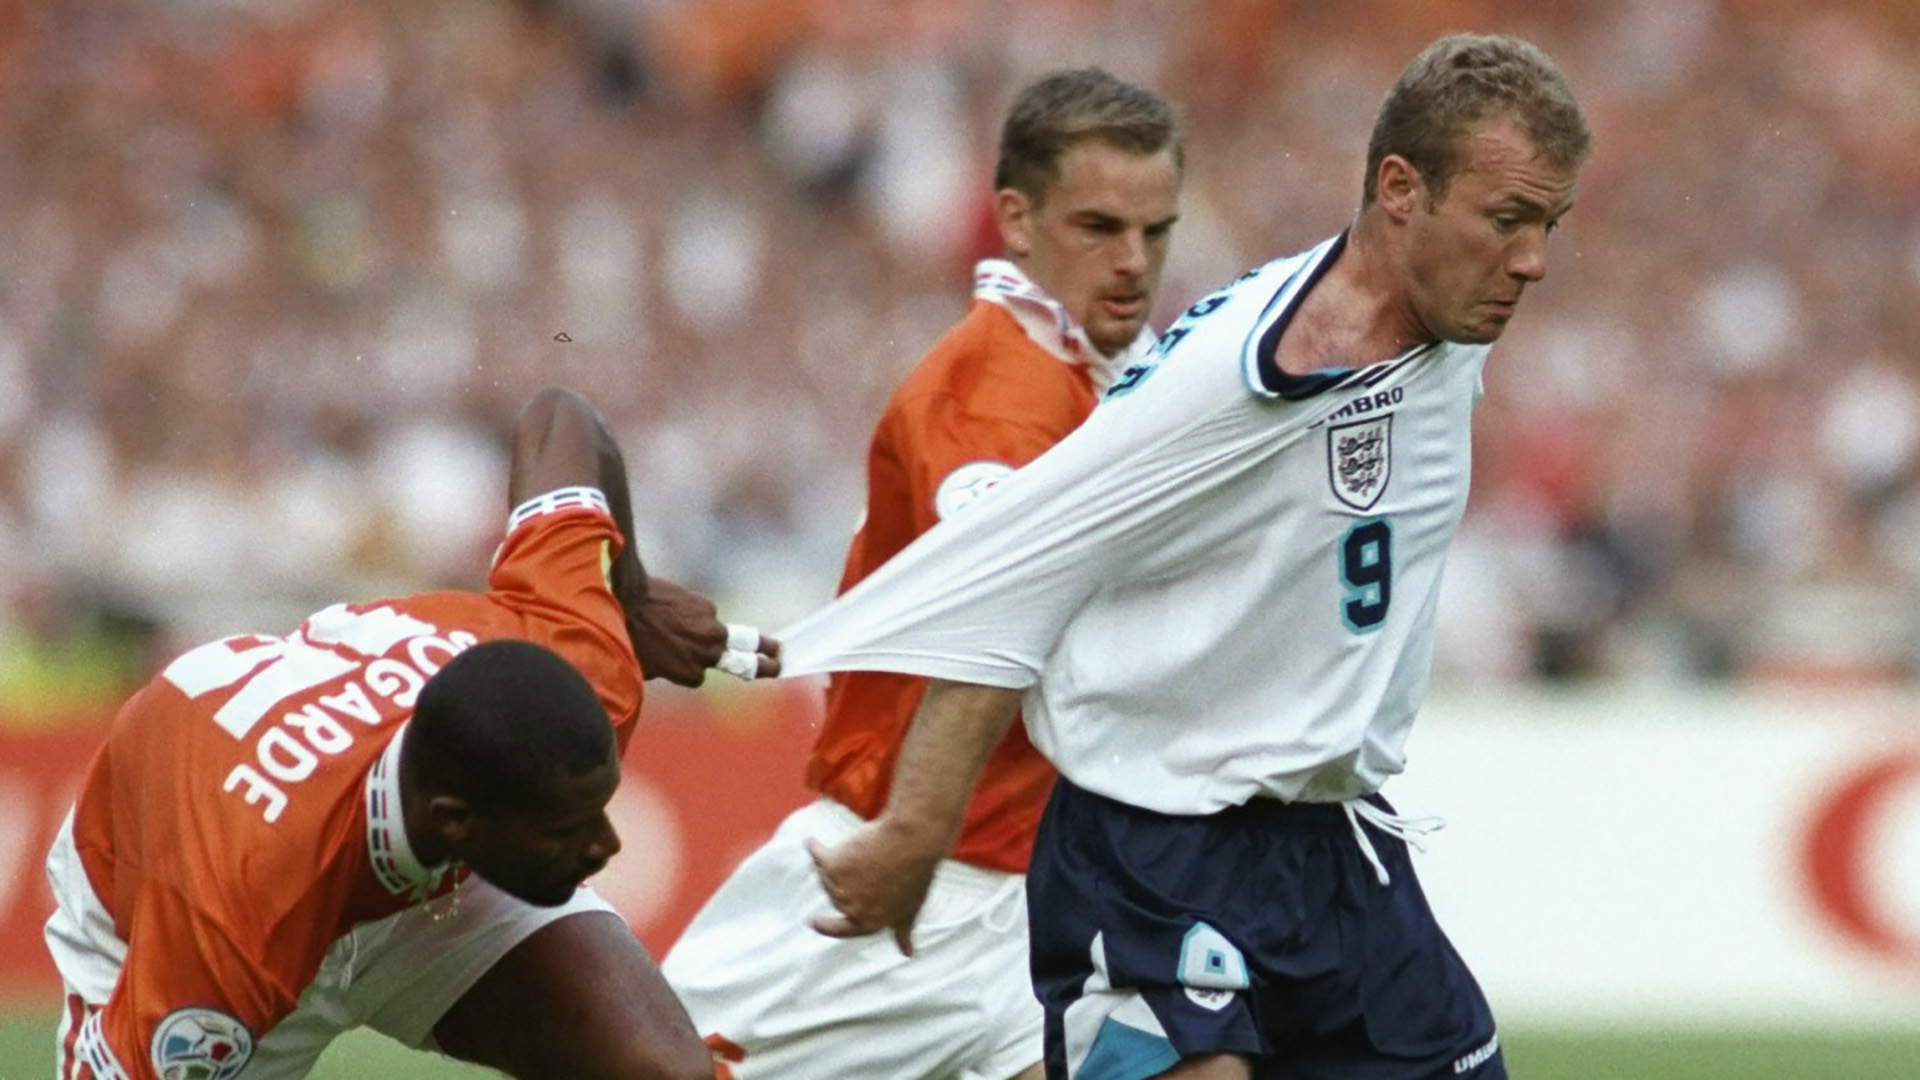 England's Euro 96 best XI? The team that demolished the Dutch